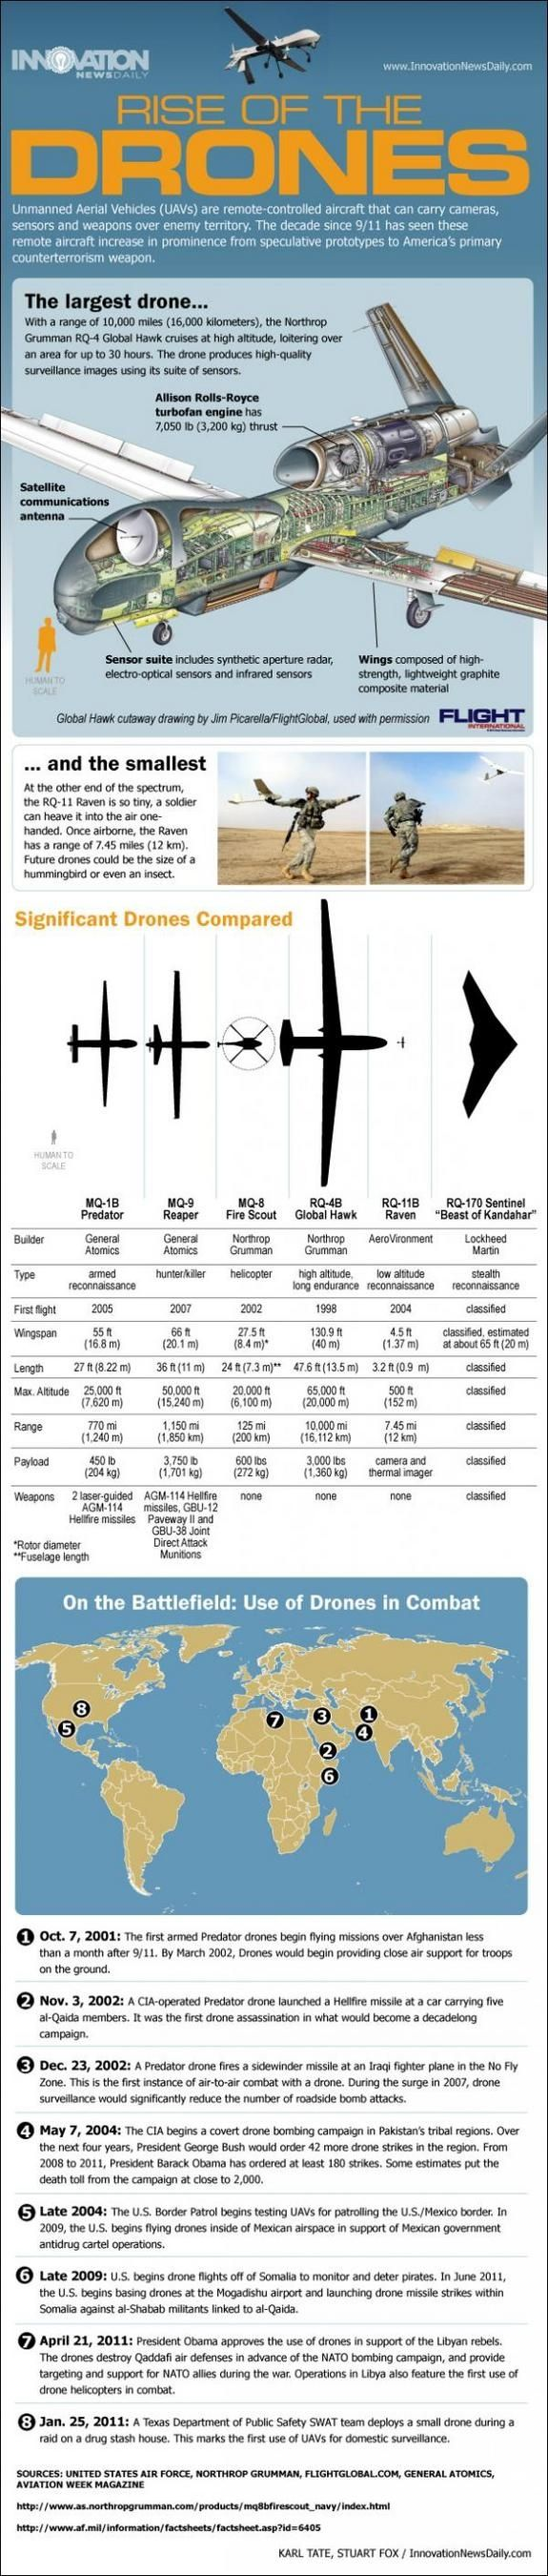 I really like how this picture displays the biggest to smallest UAV. I like how it displays information on a simple picture. This picture helped contribute to my understanding of UAVs and how I can incorporate some of these designs into my UAV.